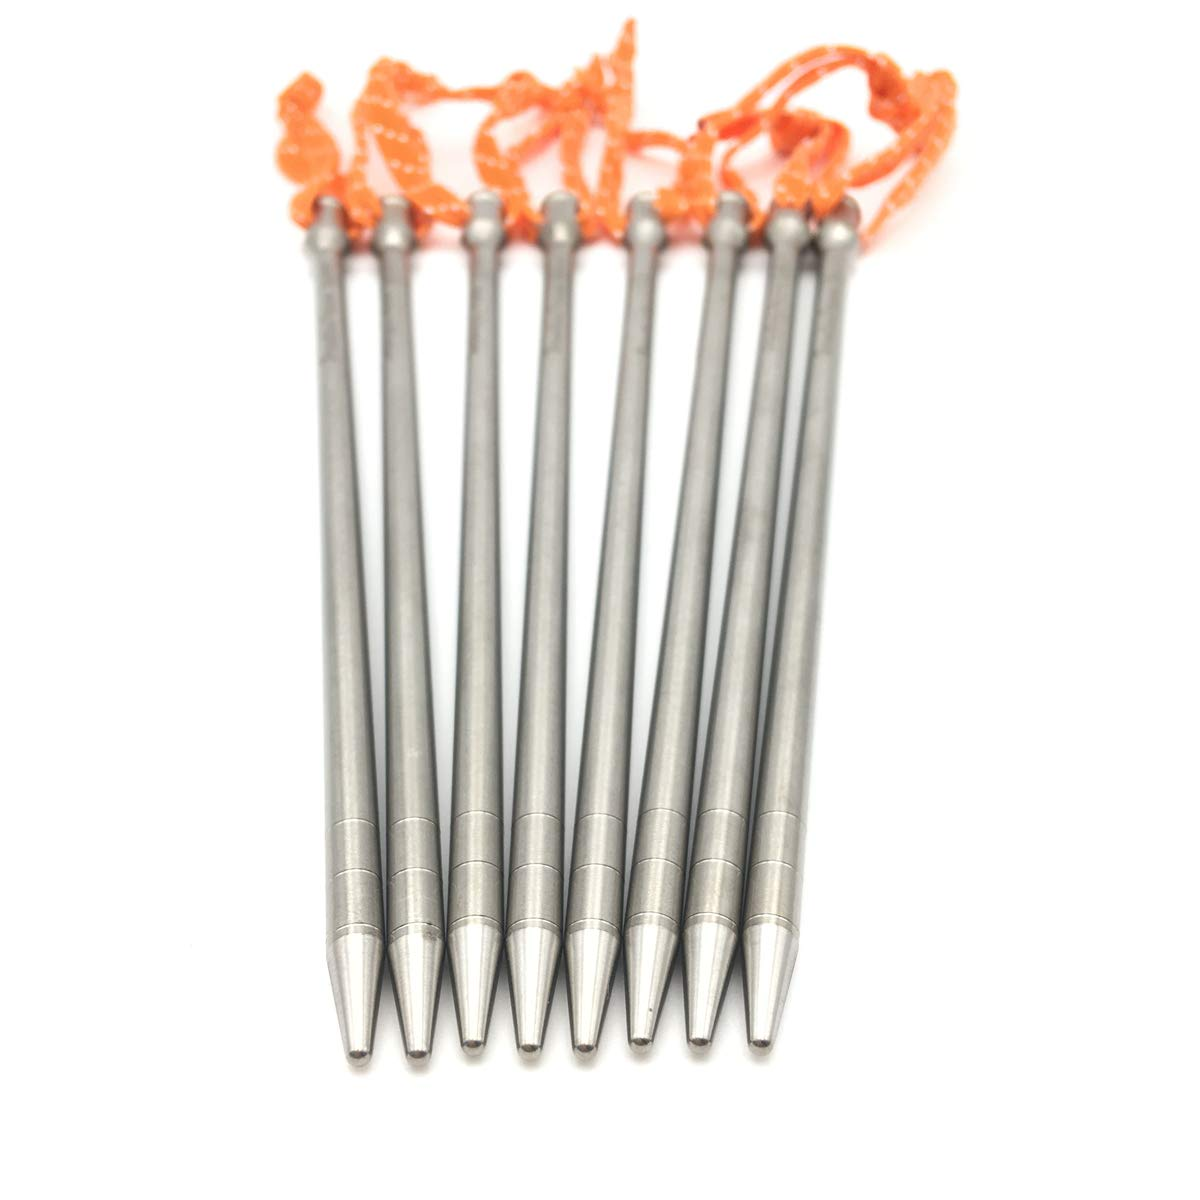 ZEARE Titanium Tent Stakes Ultra Light Titanium Alloy Tent Pegs Outdoor Camping Accessories (8 PCS) by ZEARE